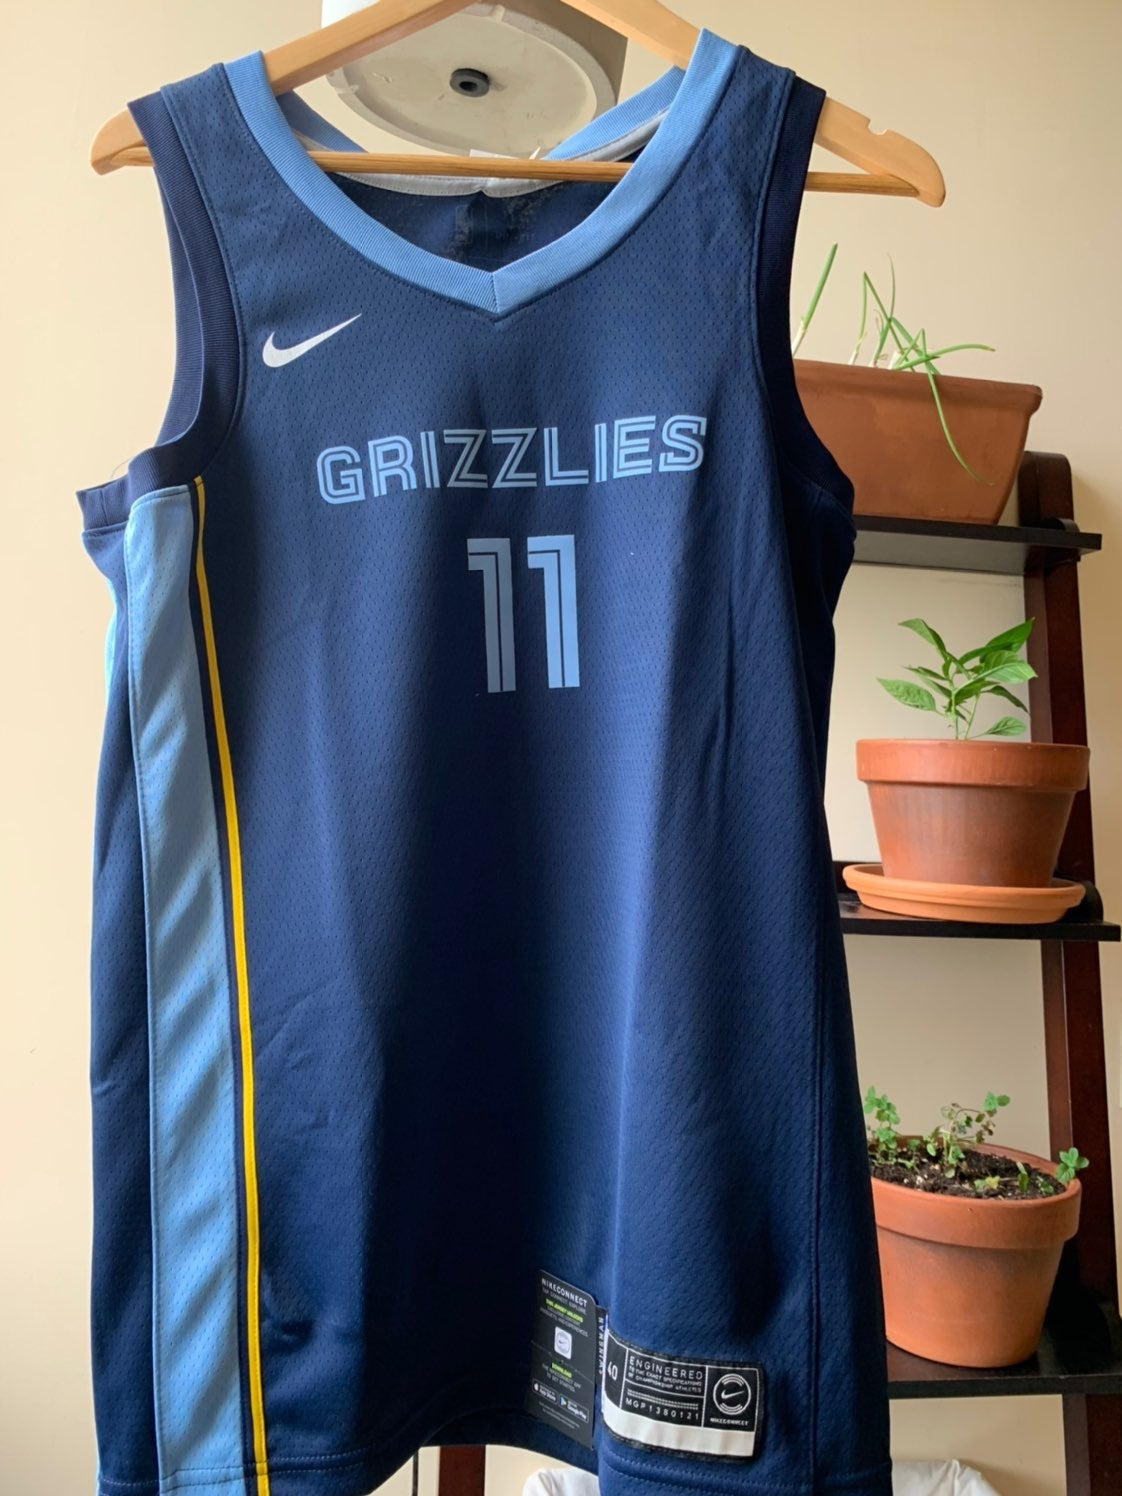 Nike Grizzlies Jersey Mile Conely size S